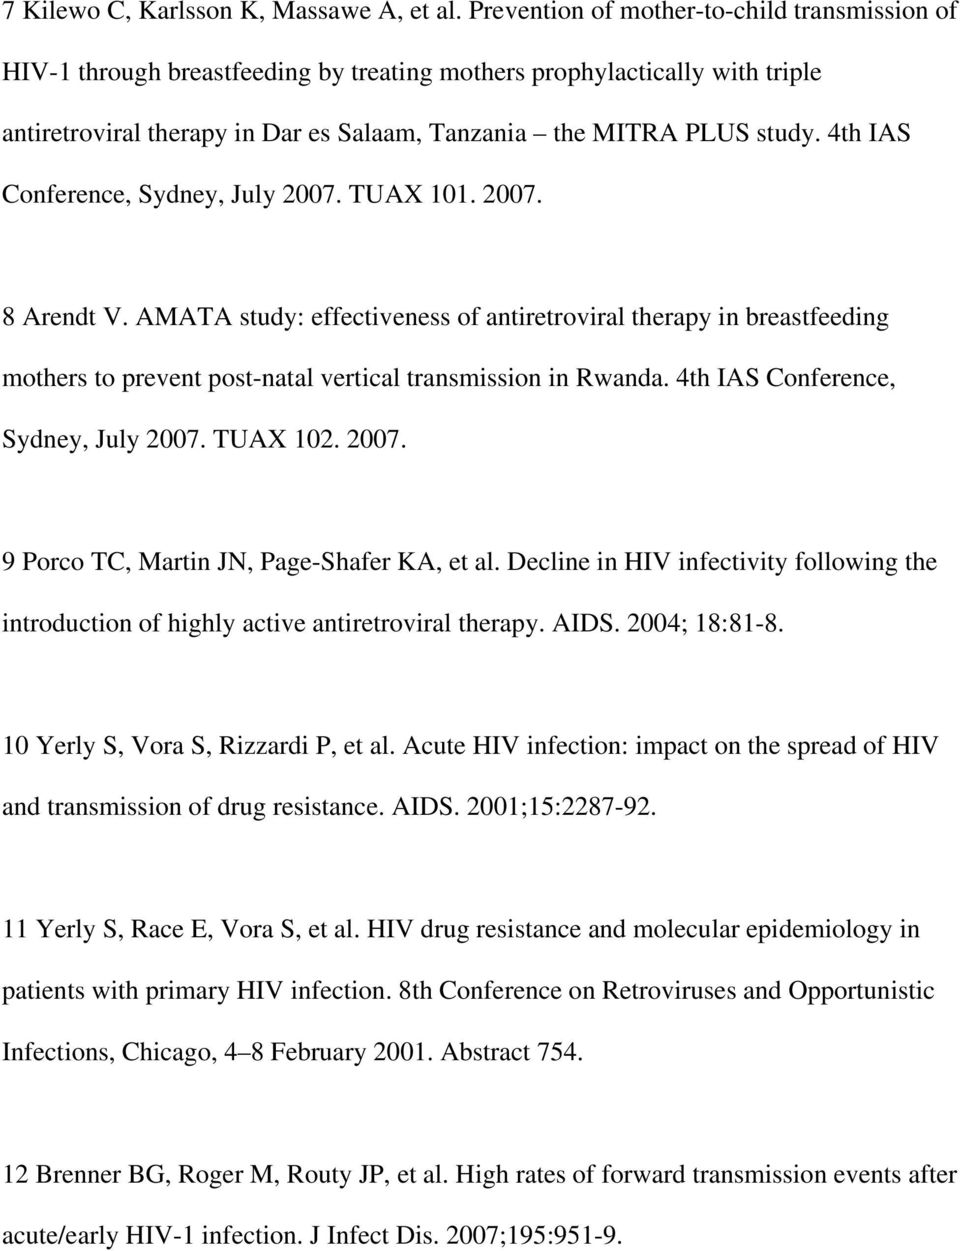 4th IAS Conference, Sydney, July 2007. TUAX 101. 2007. 8 Arendt V. AMATA study: effectiveness of antiretroviral therapy in breastfeeding mothers to prevent post-natal vertical transmission in Rwanda.